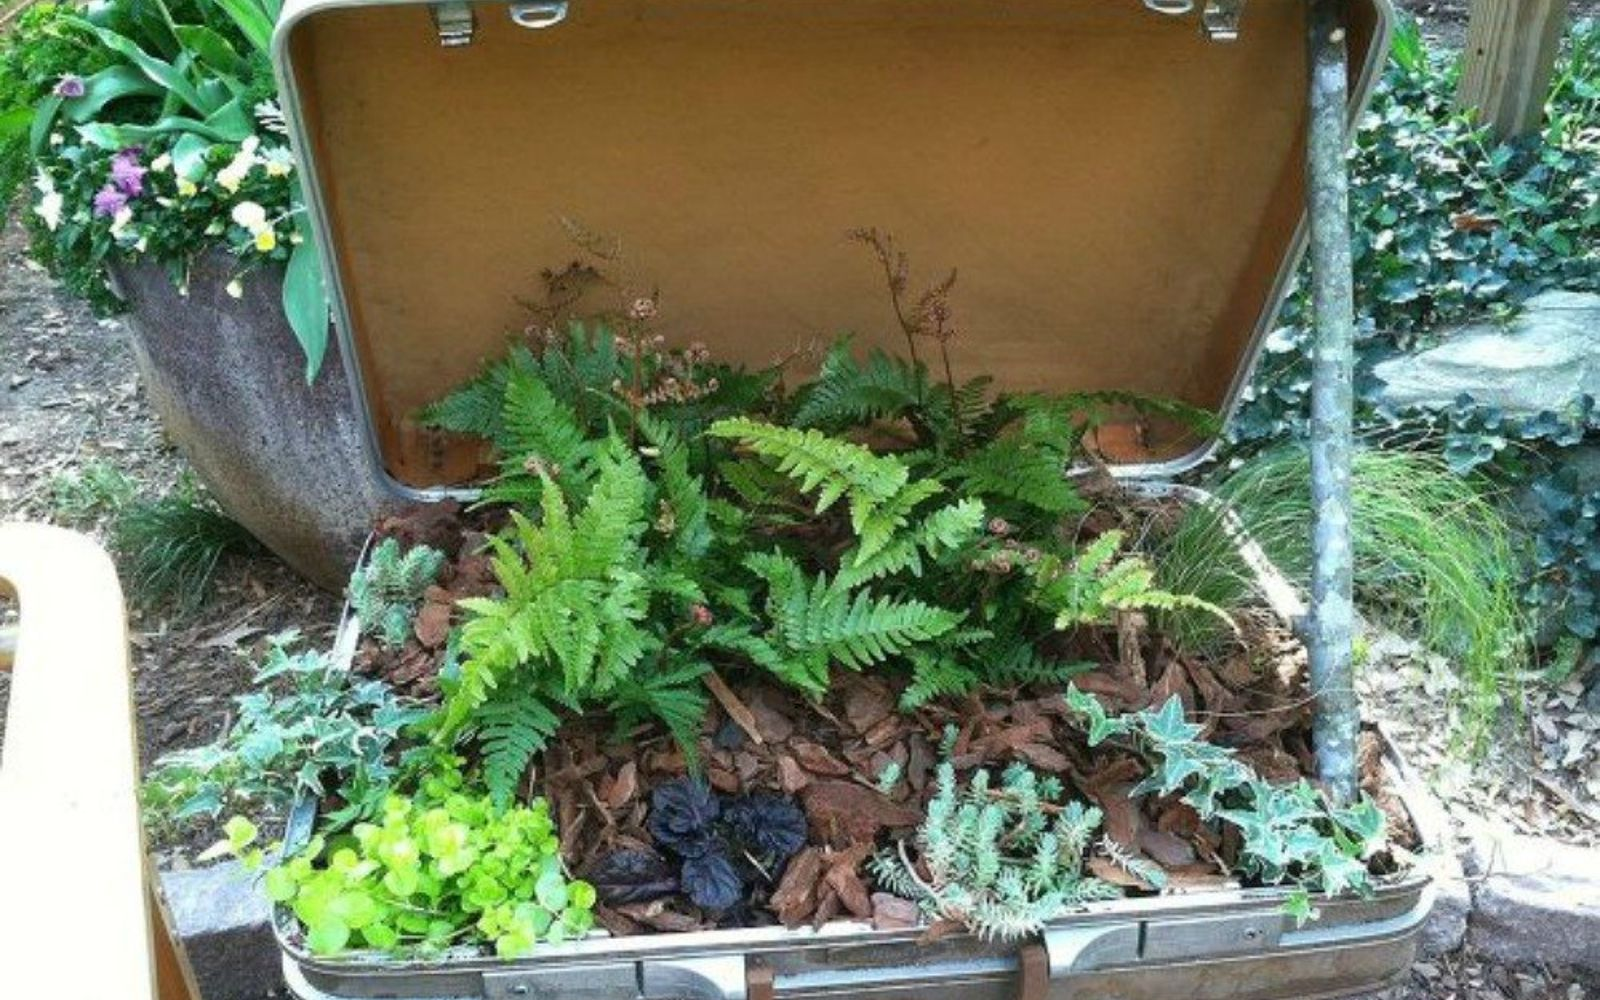 s don t throw out your old suitcase before you see these 15 clever ideas, Plant your favorite herbs in it